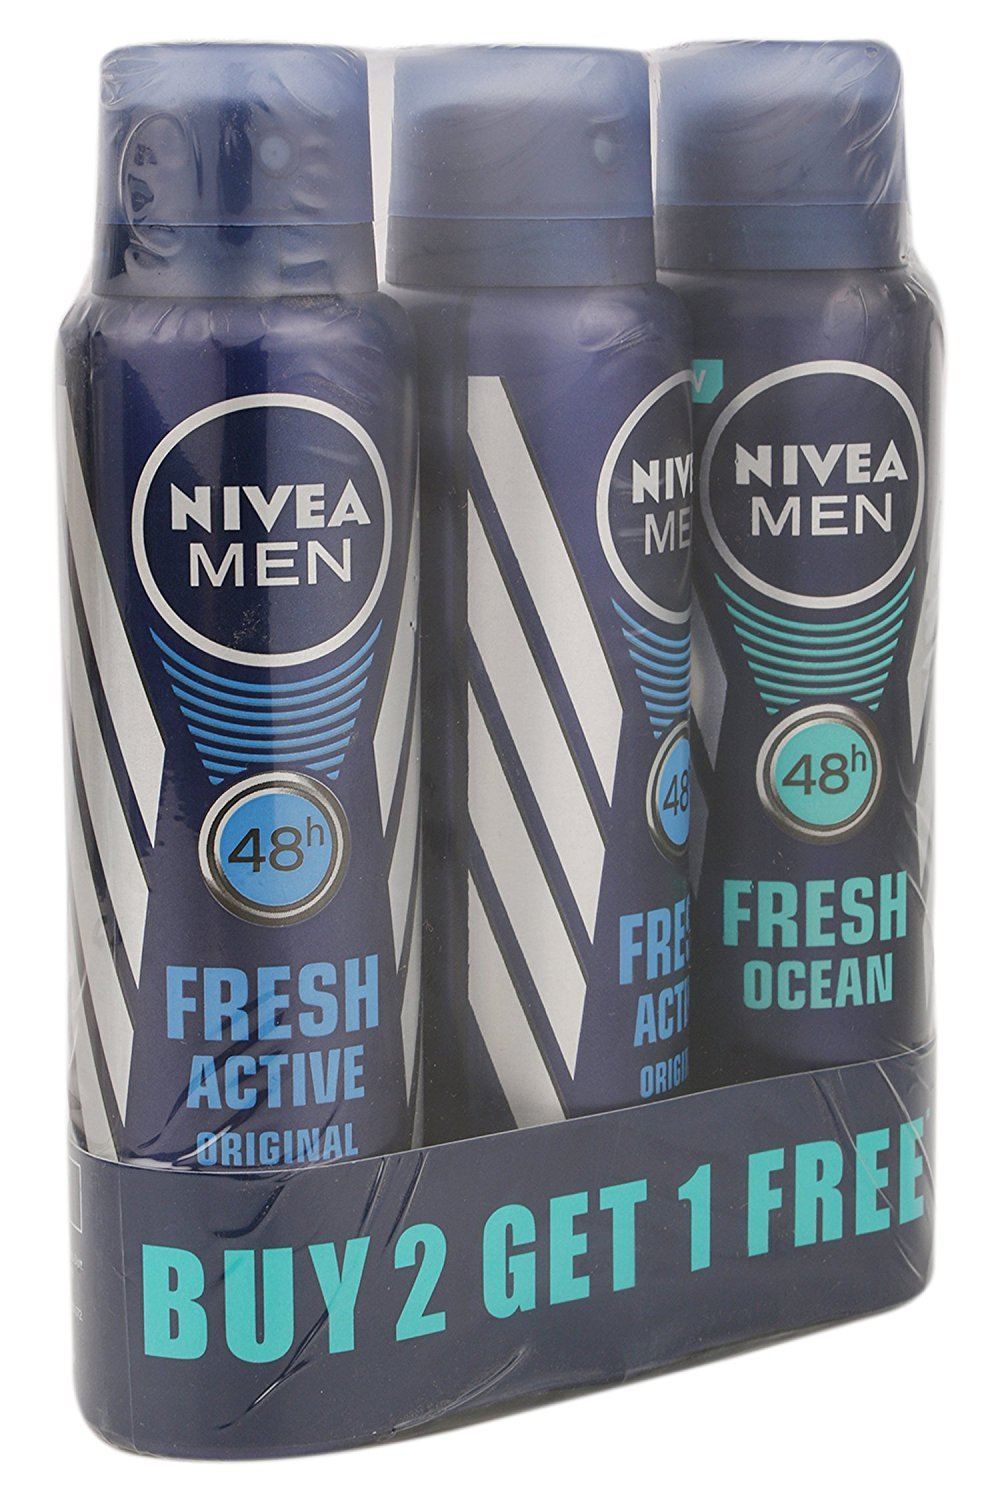 Nivea Fresh Active Deodrant (Buy 2 Get 1 Free)